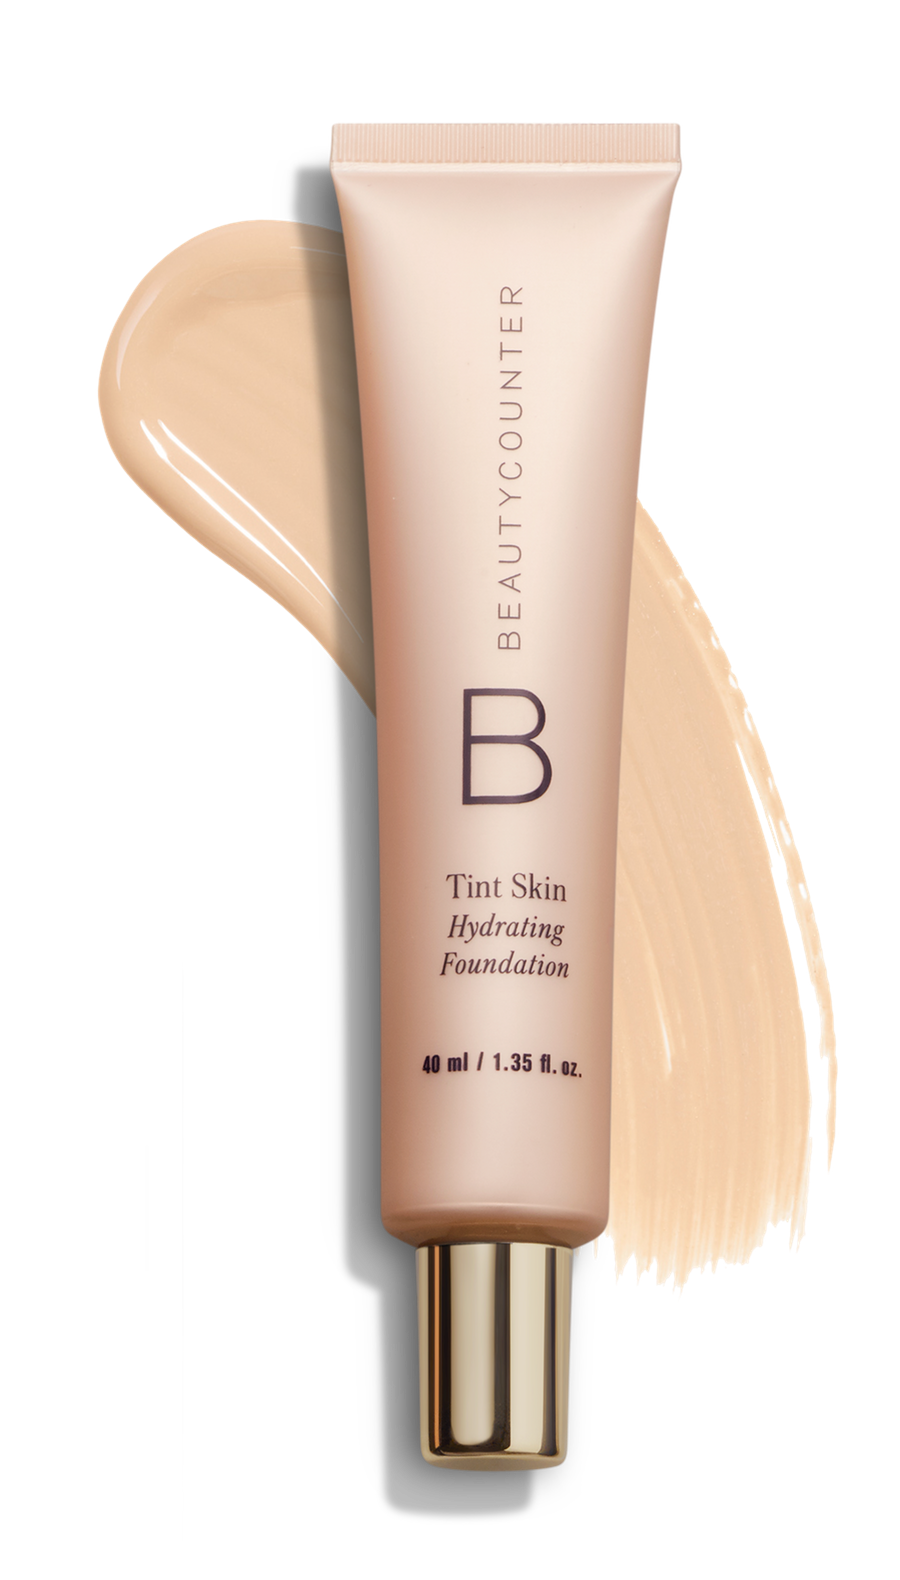 product-images_2310_imgs_pdp-new-tint-skin-hydrating-foundation-porcelain.png